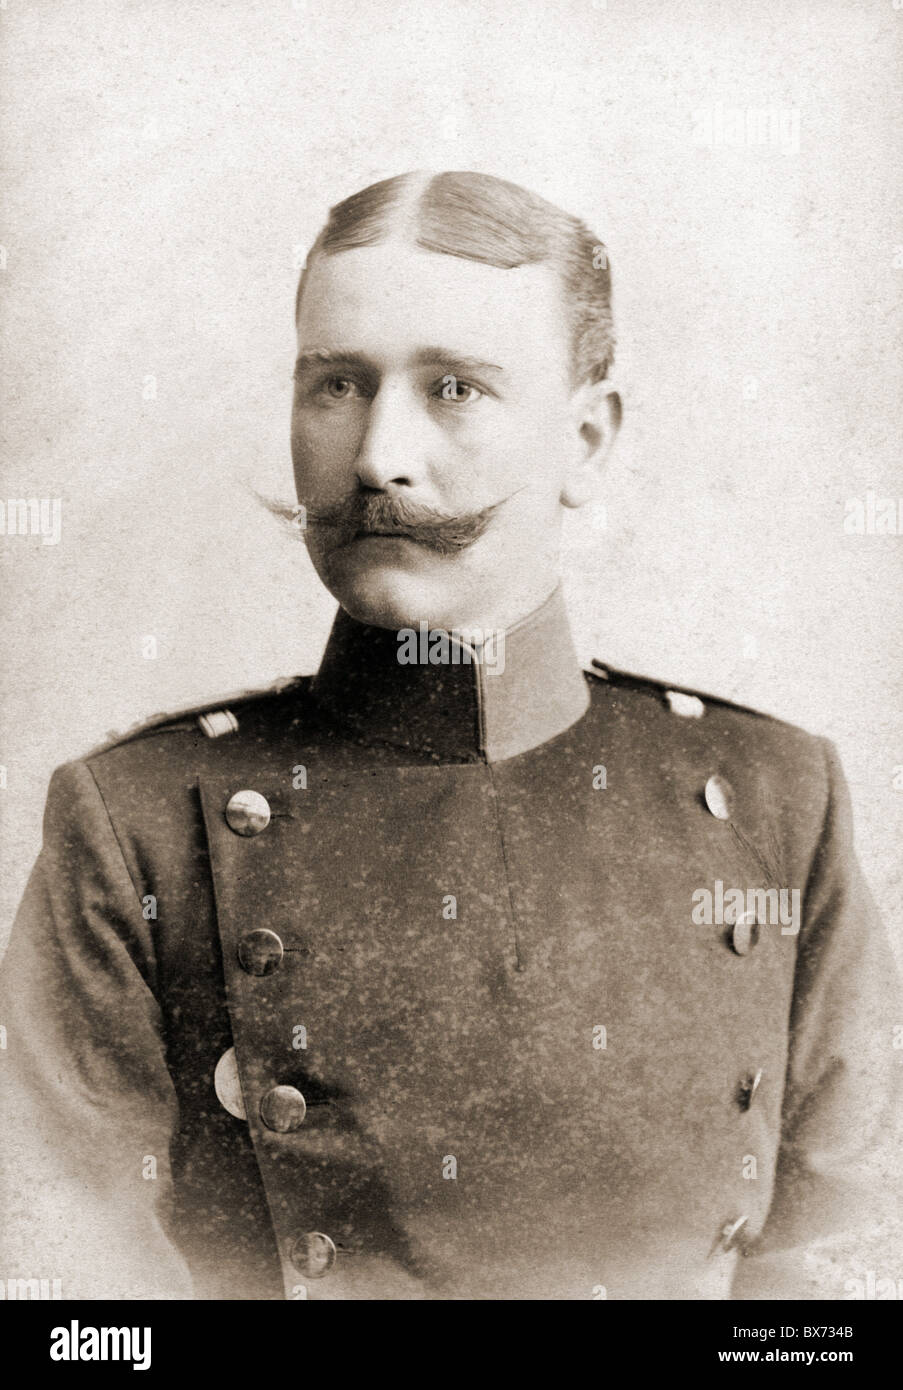 Military Germany Prussia Army Officer Cabinet Card By